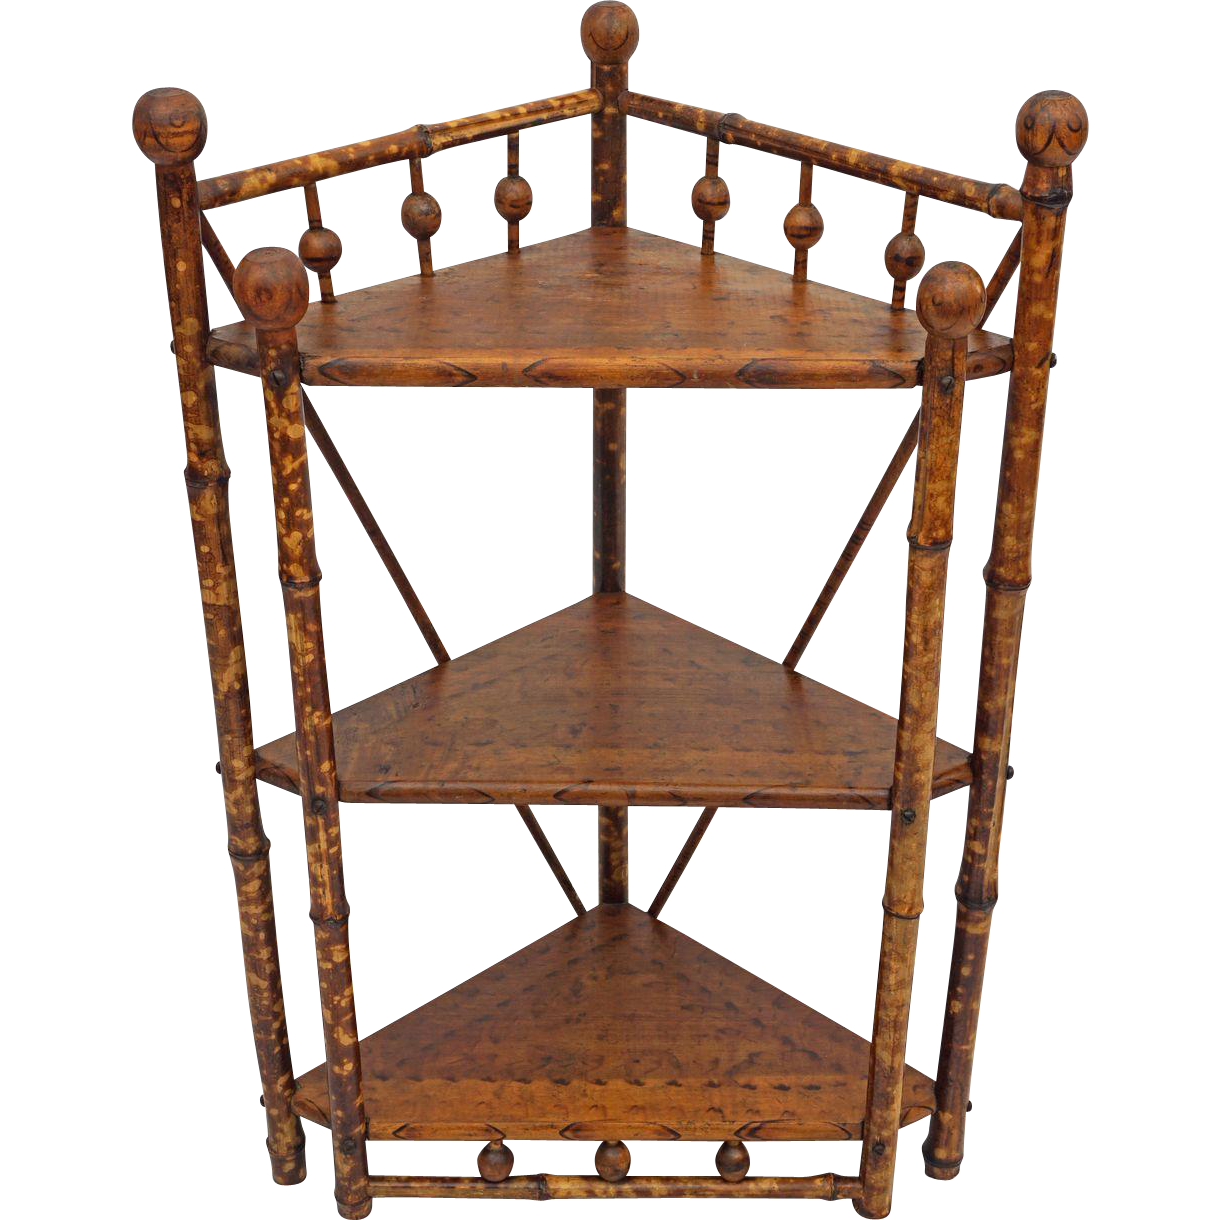 British Colonial Style Stick and Ball Corner Etagere / Stand / Shelves - c. 1900's, England